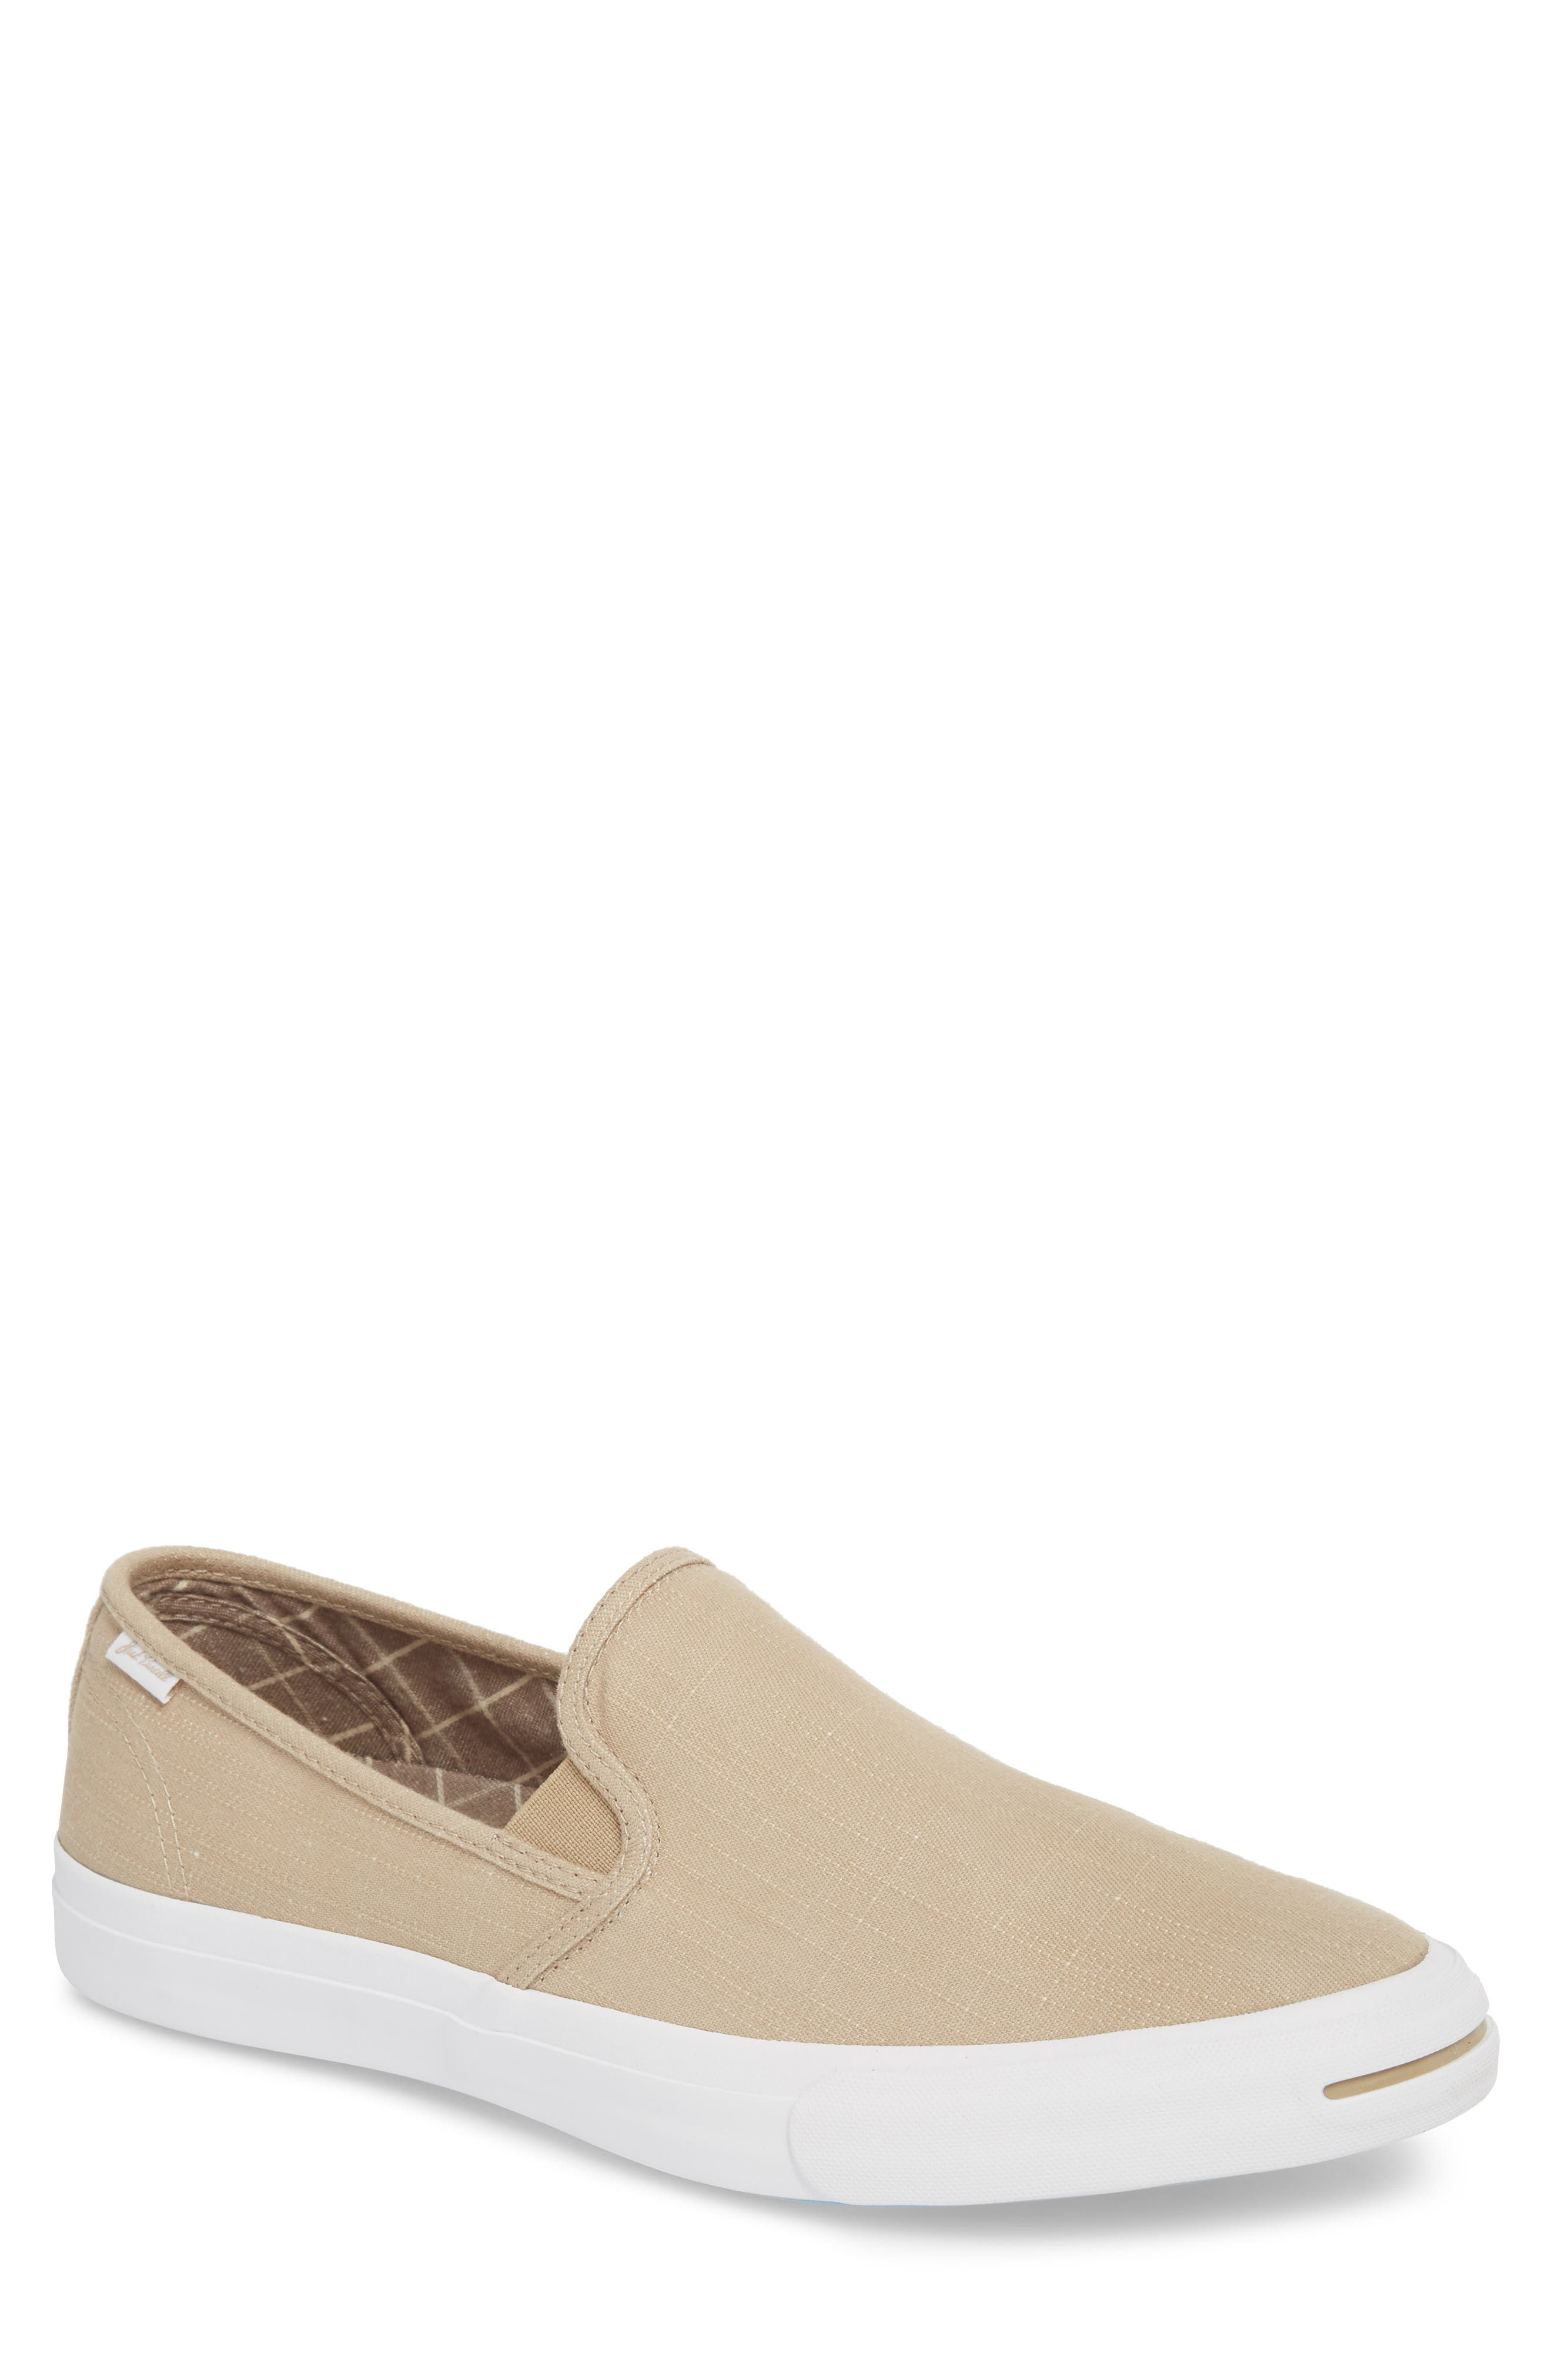 Main Image - Converse Jack Purcell Low Profile Slip-On Sneaker (Men)